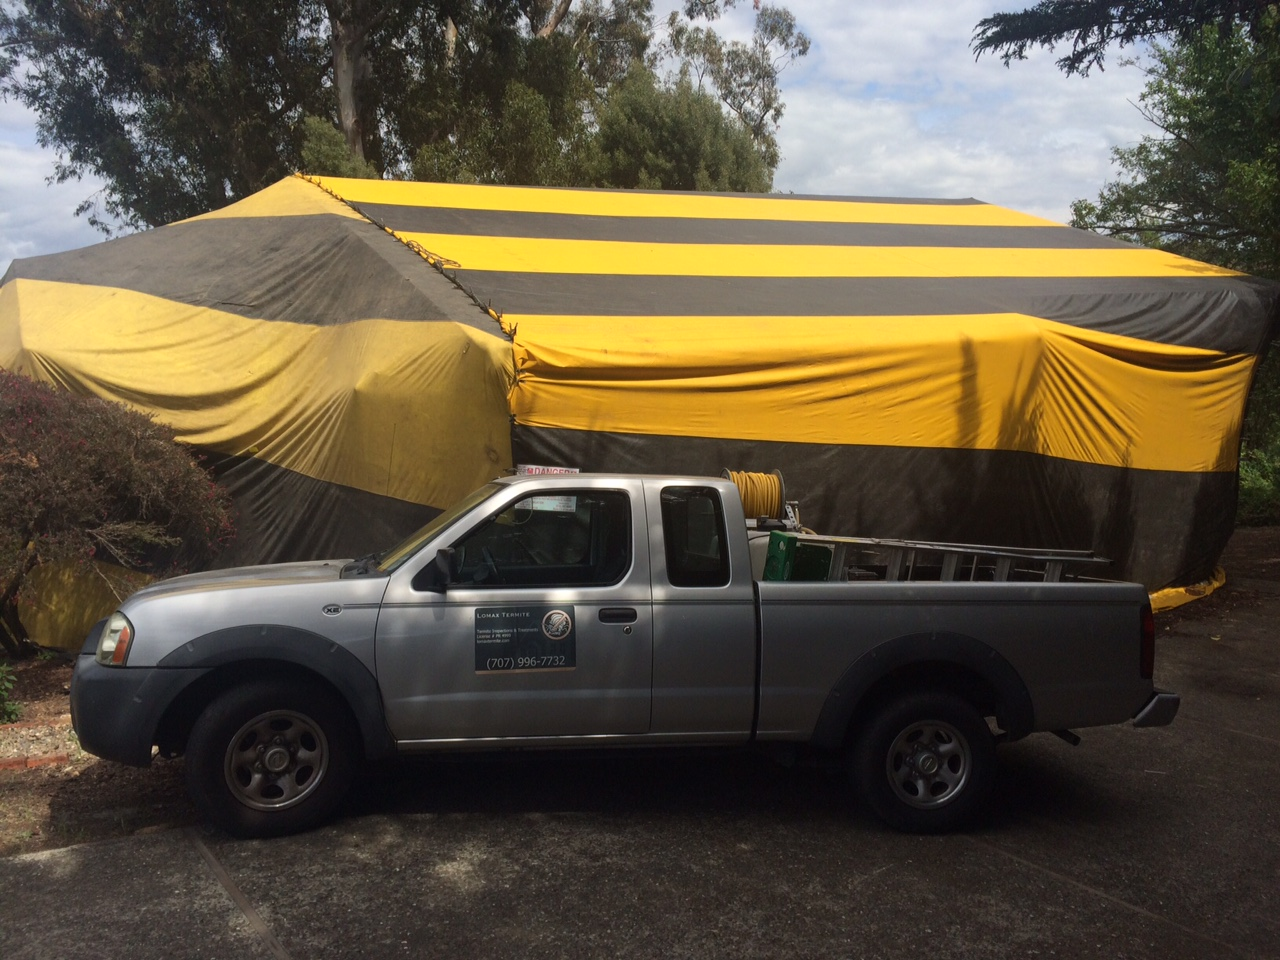 Performing a fumigation for powderpost beetles in San Rafael in May of 2015